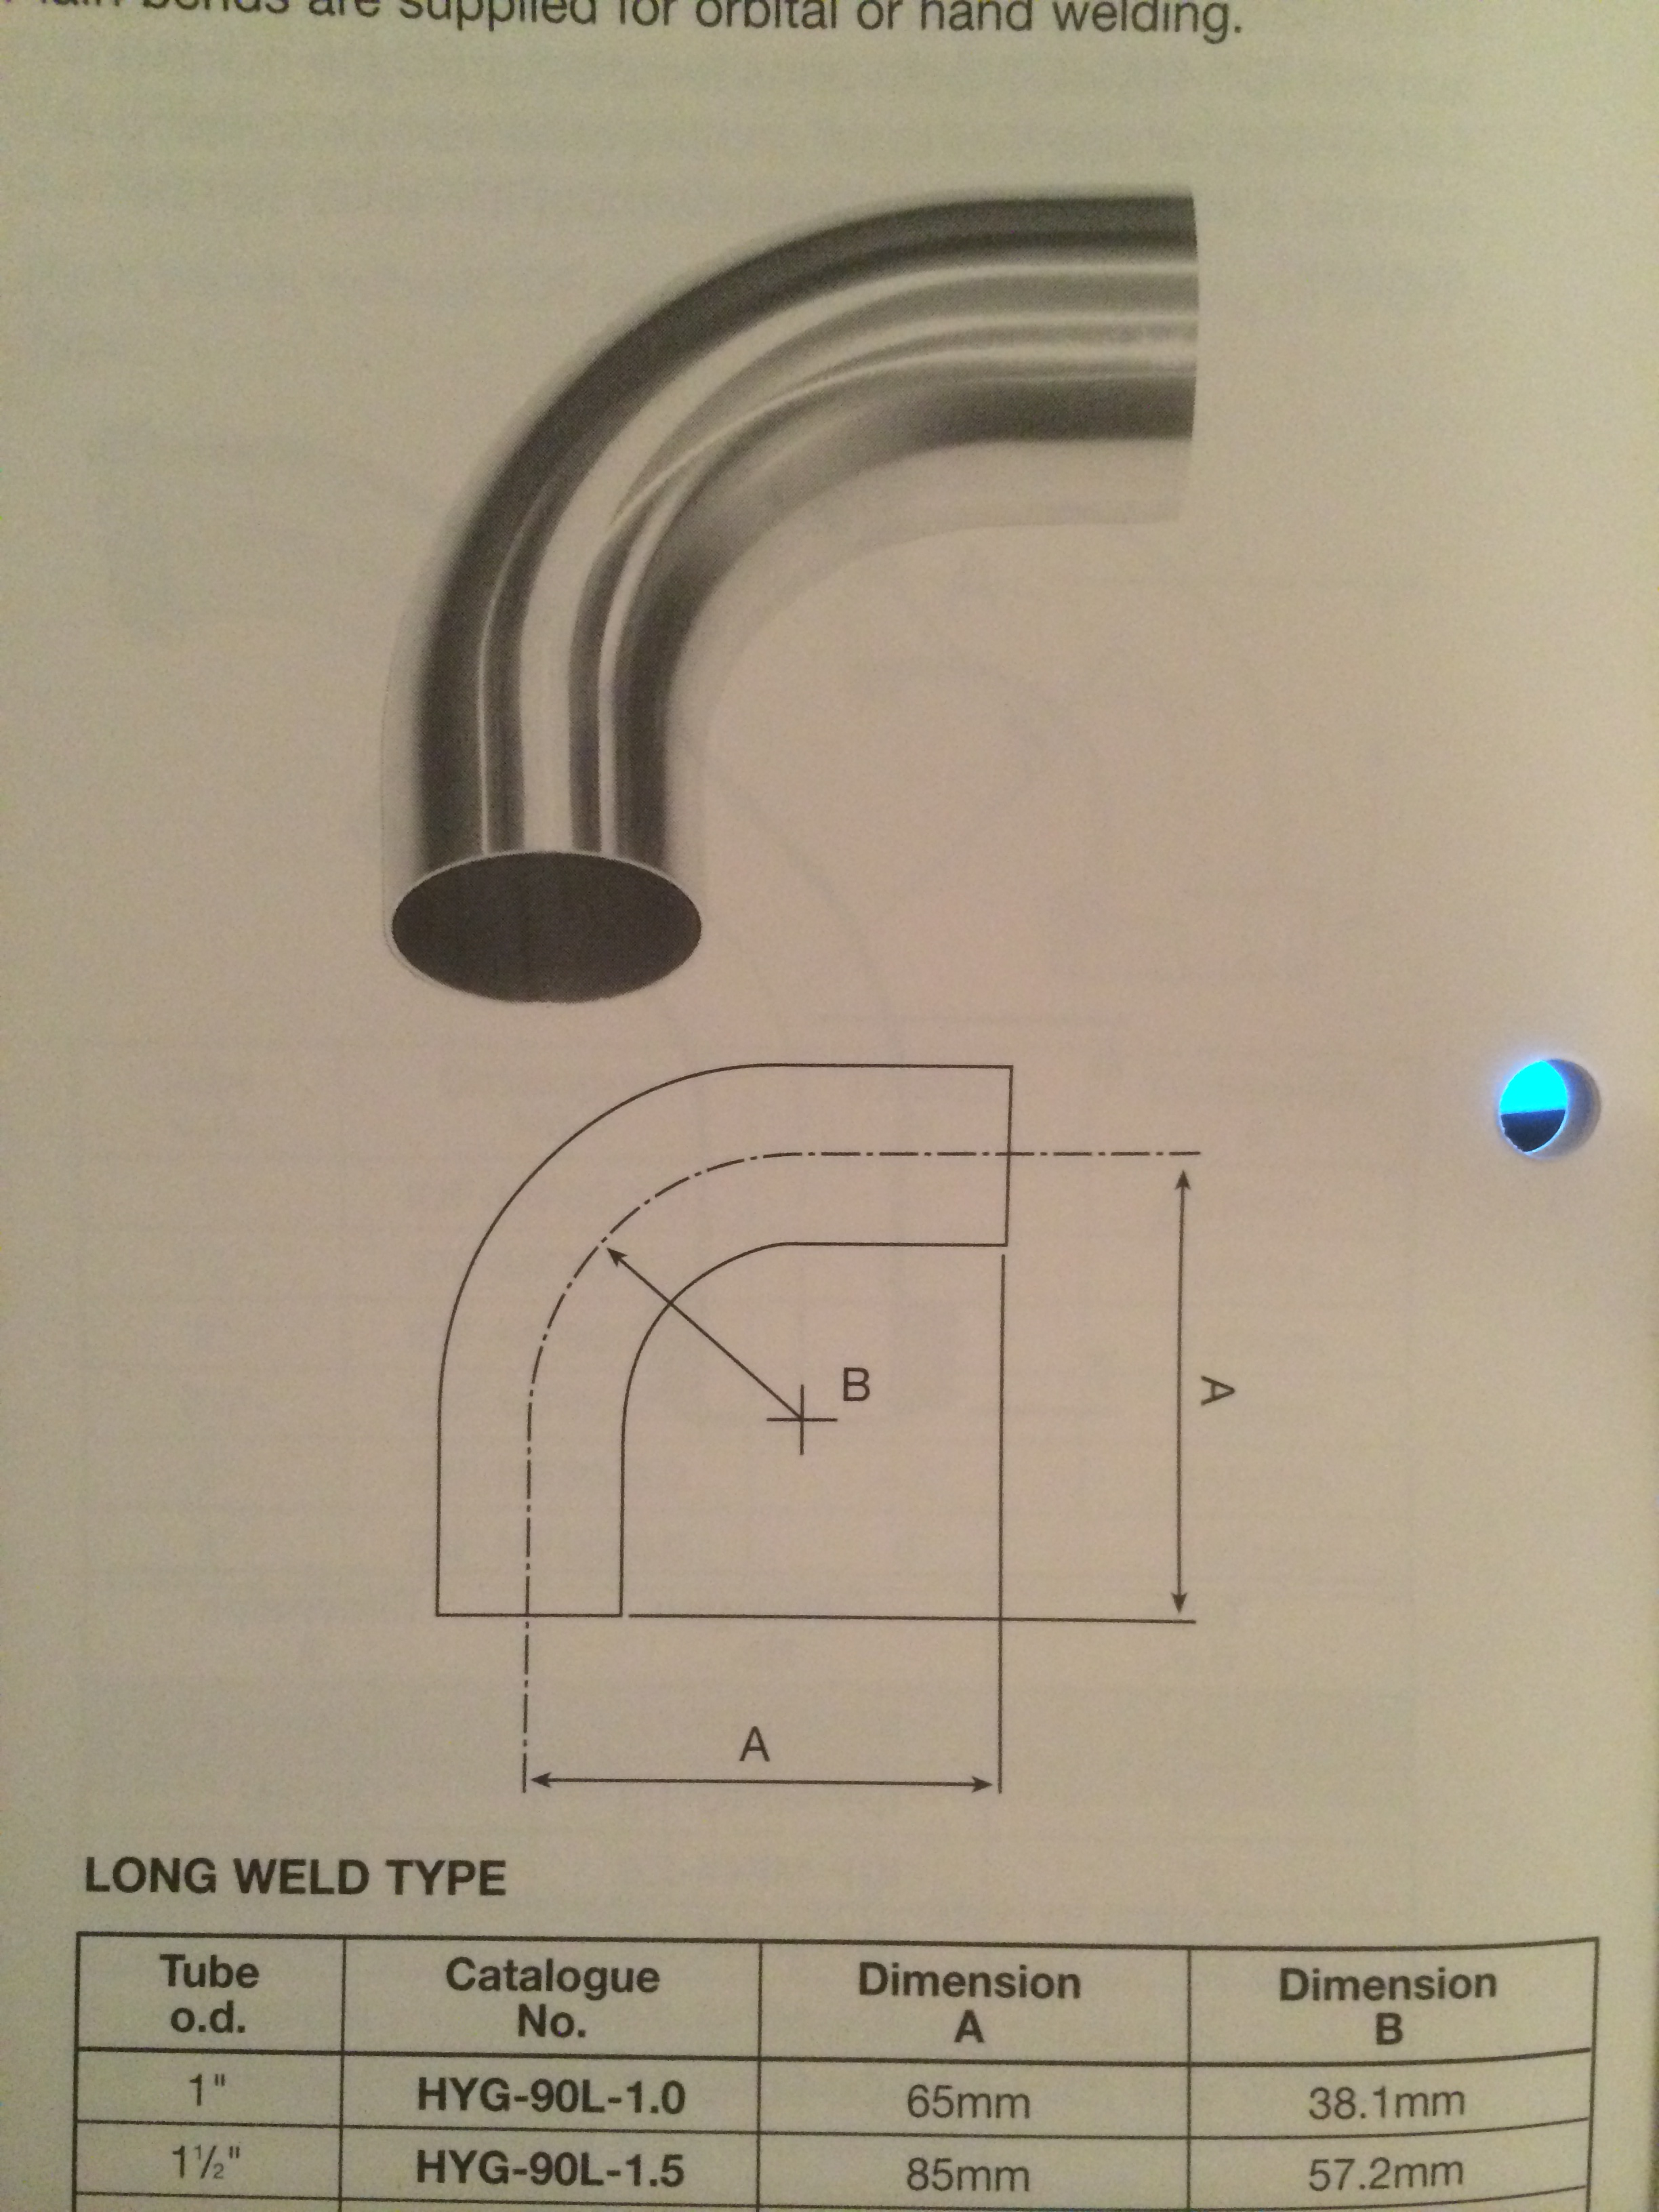 pipes and fittings beginner questions autodesk community autocad